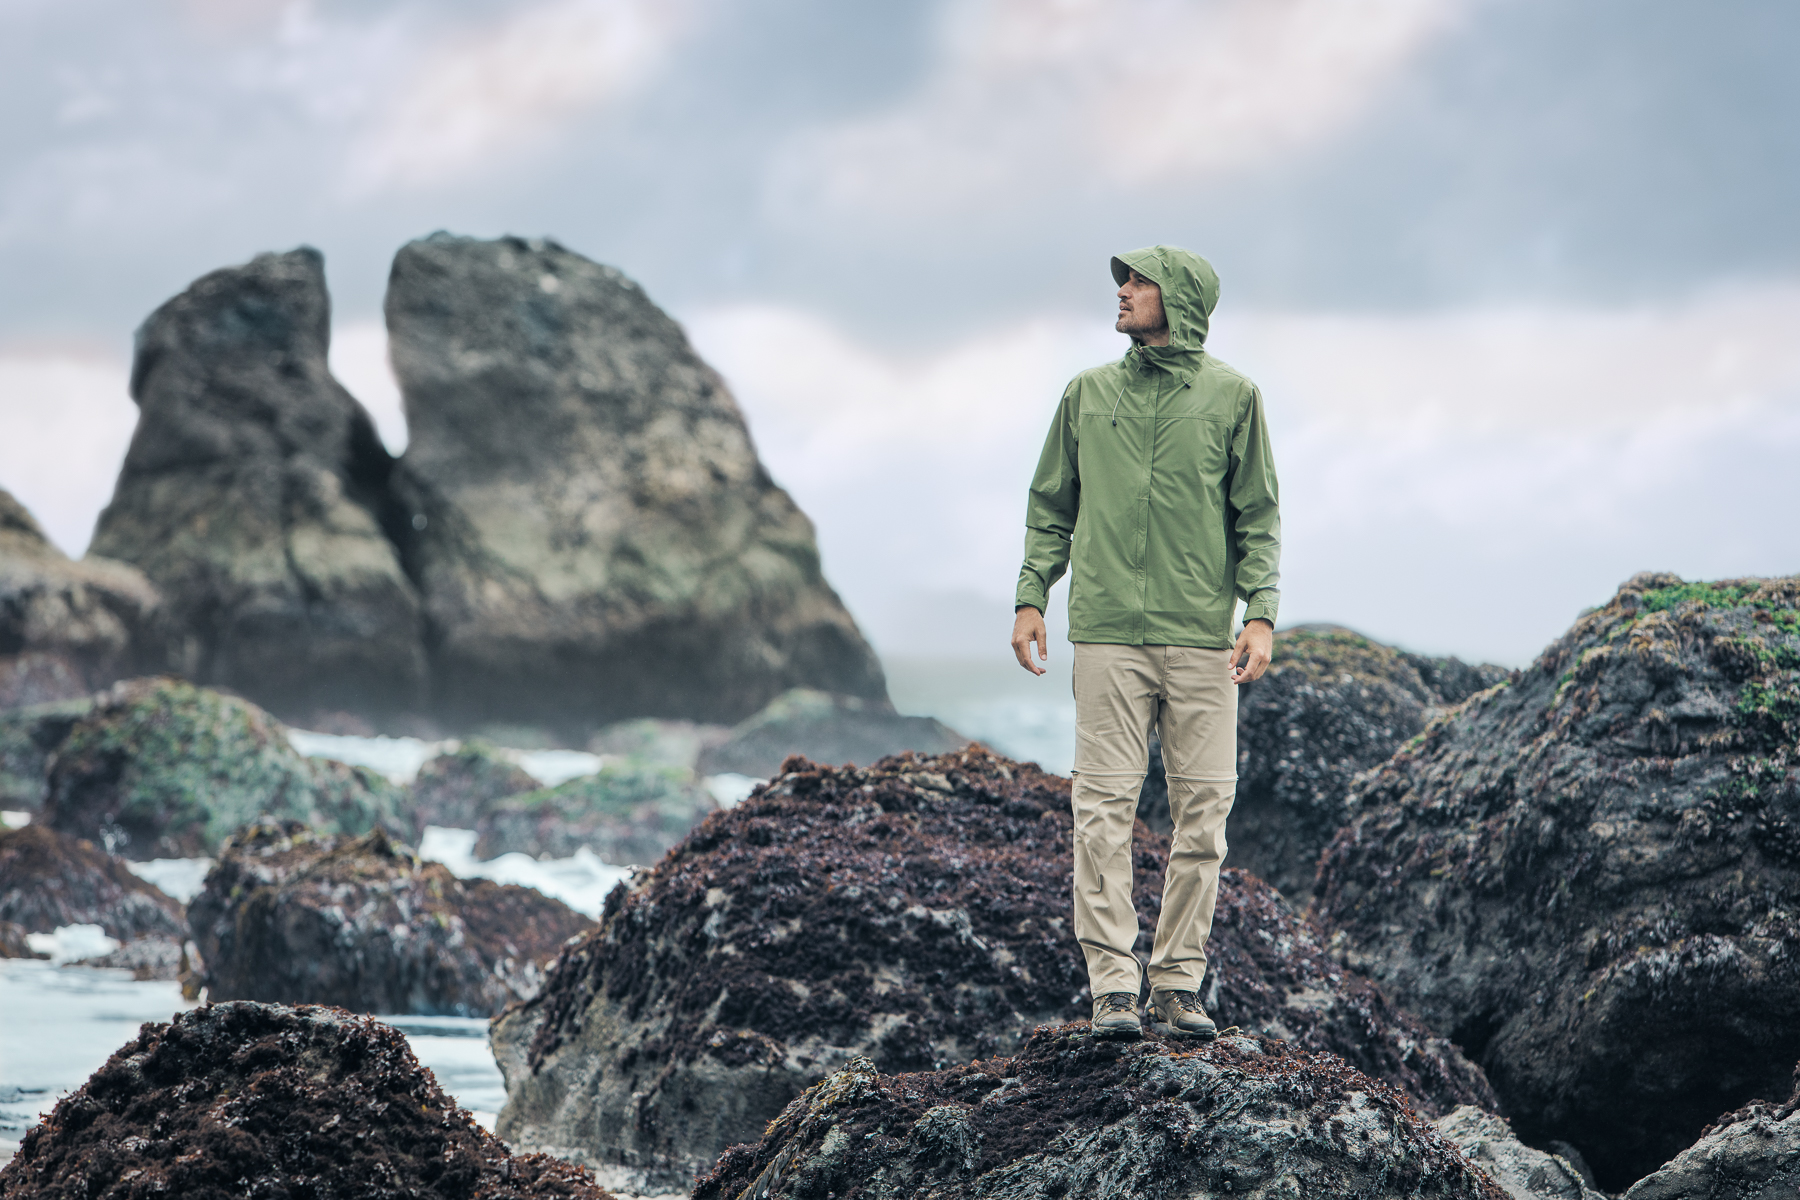 Royal Robbins - Lifestyle Advertising Hiker on the Rocks